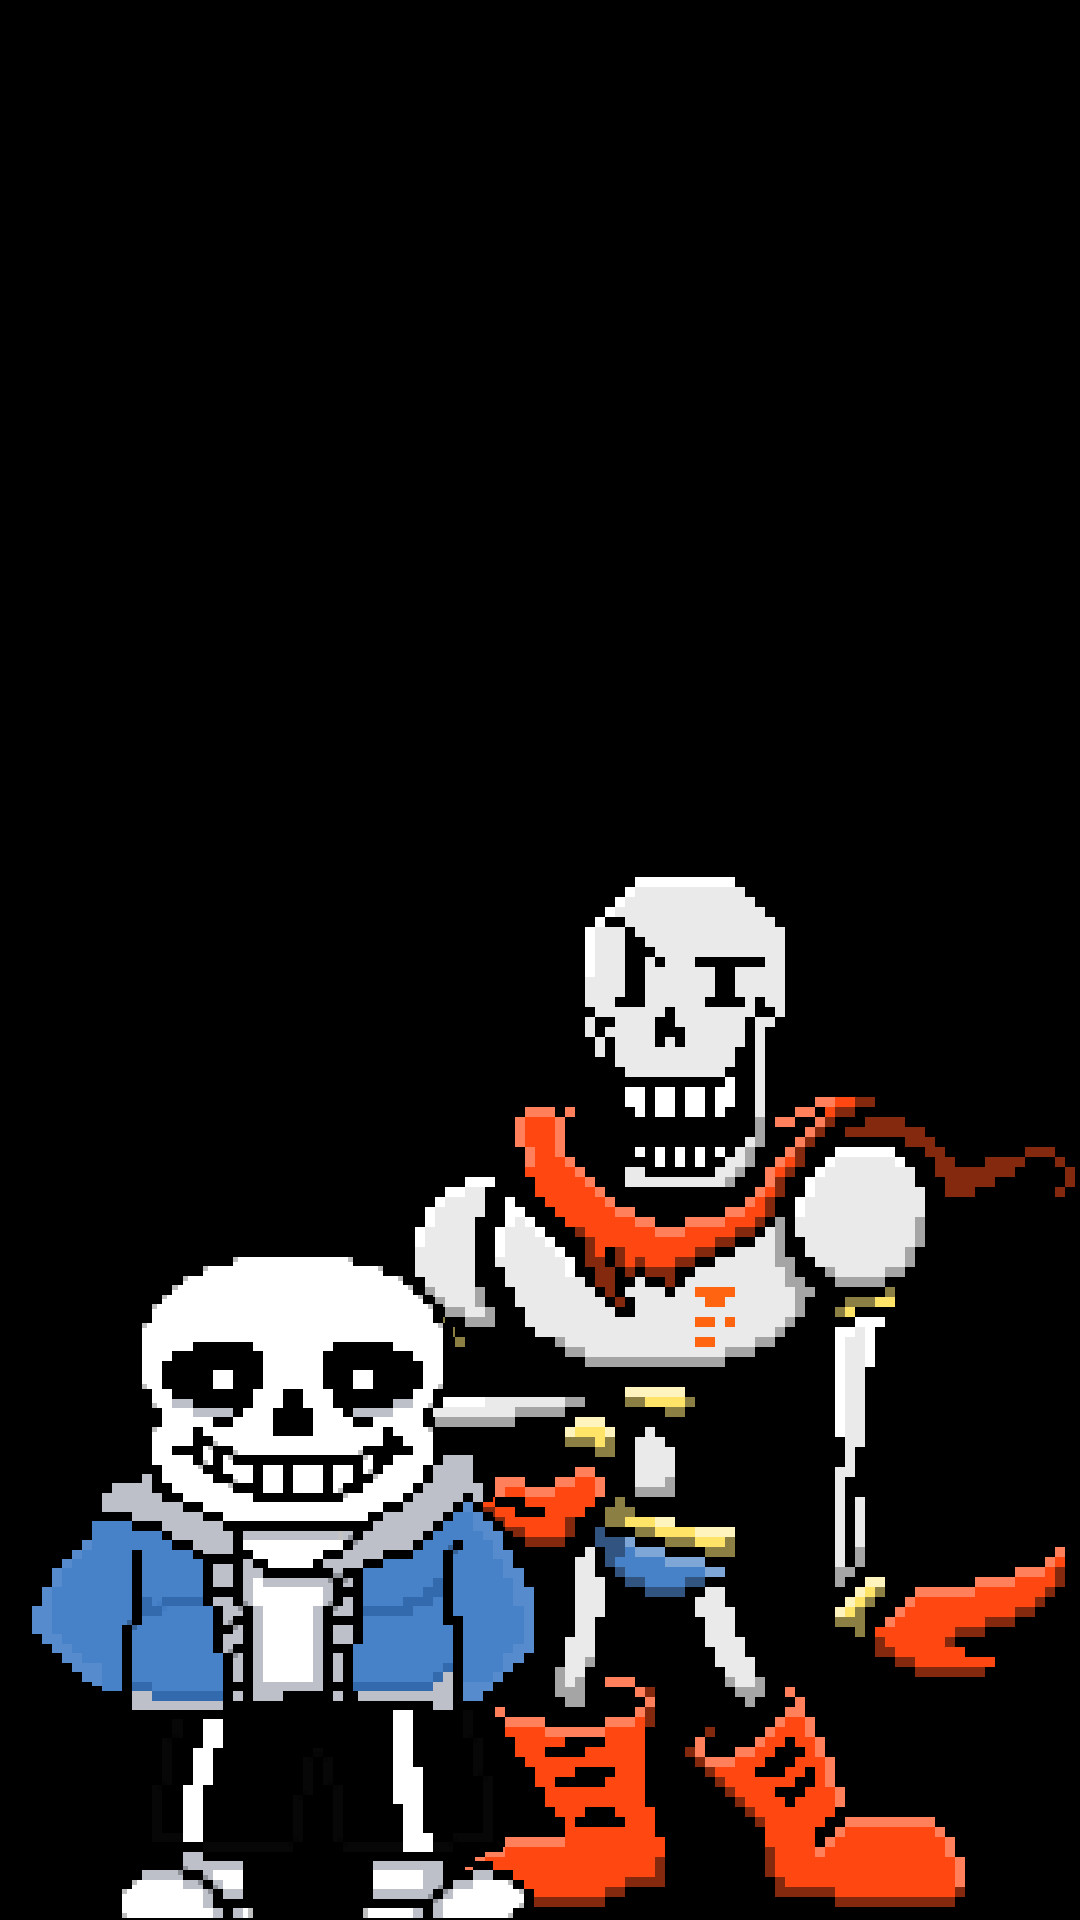 1080x1920 undertale undertale wallpaper undertale wallpapers undyne papyrus sans  alphys 1920x1080 phone wallpaper undertale-wallpapers.